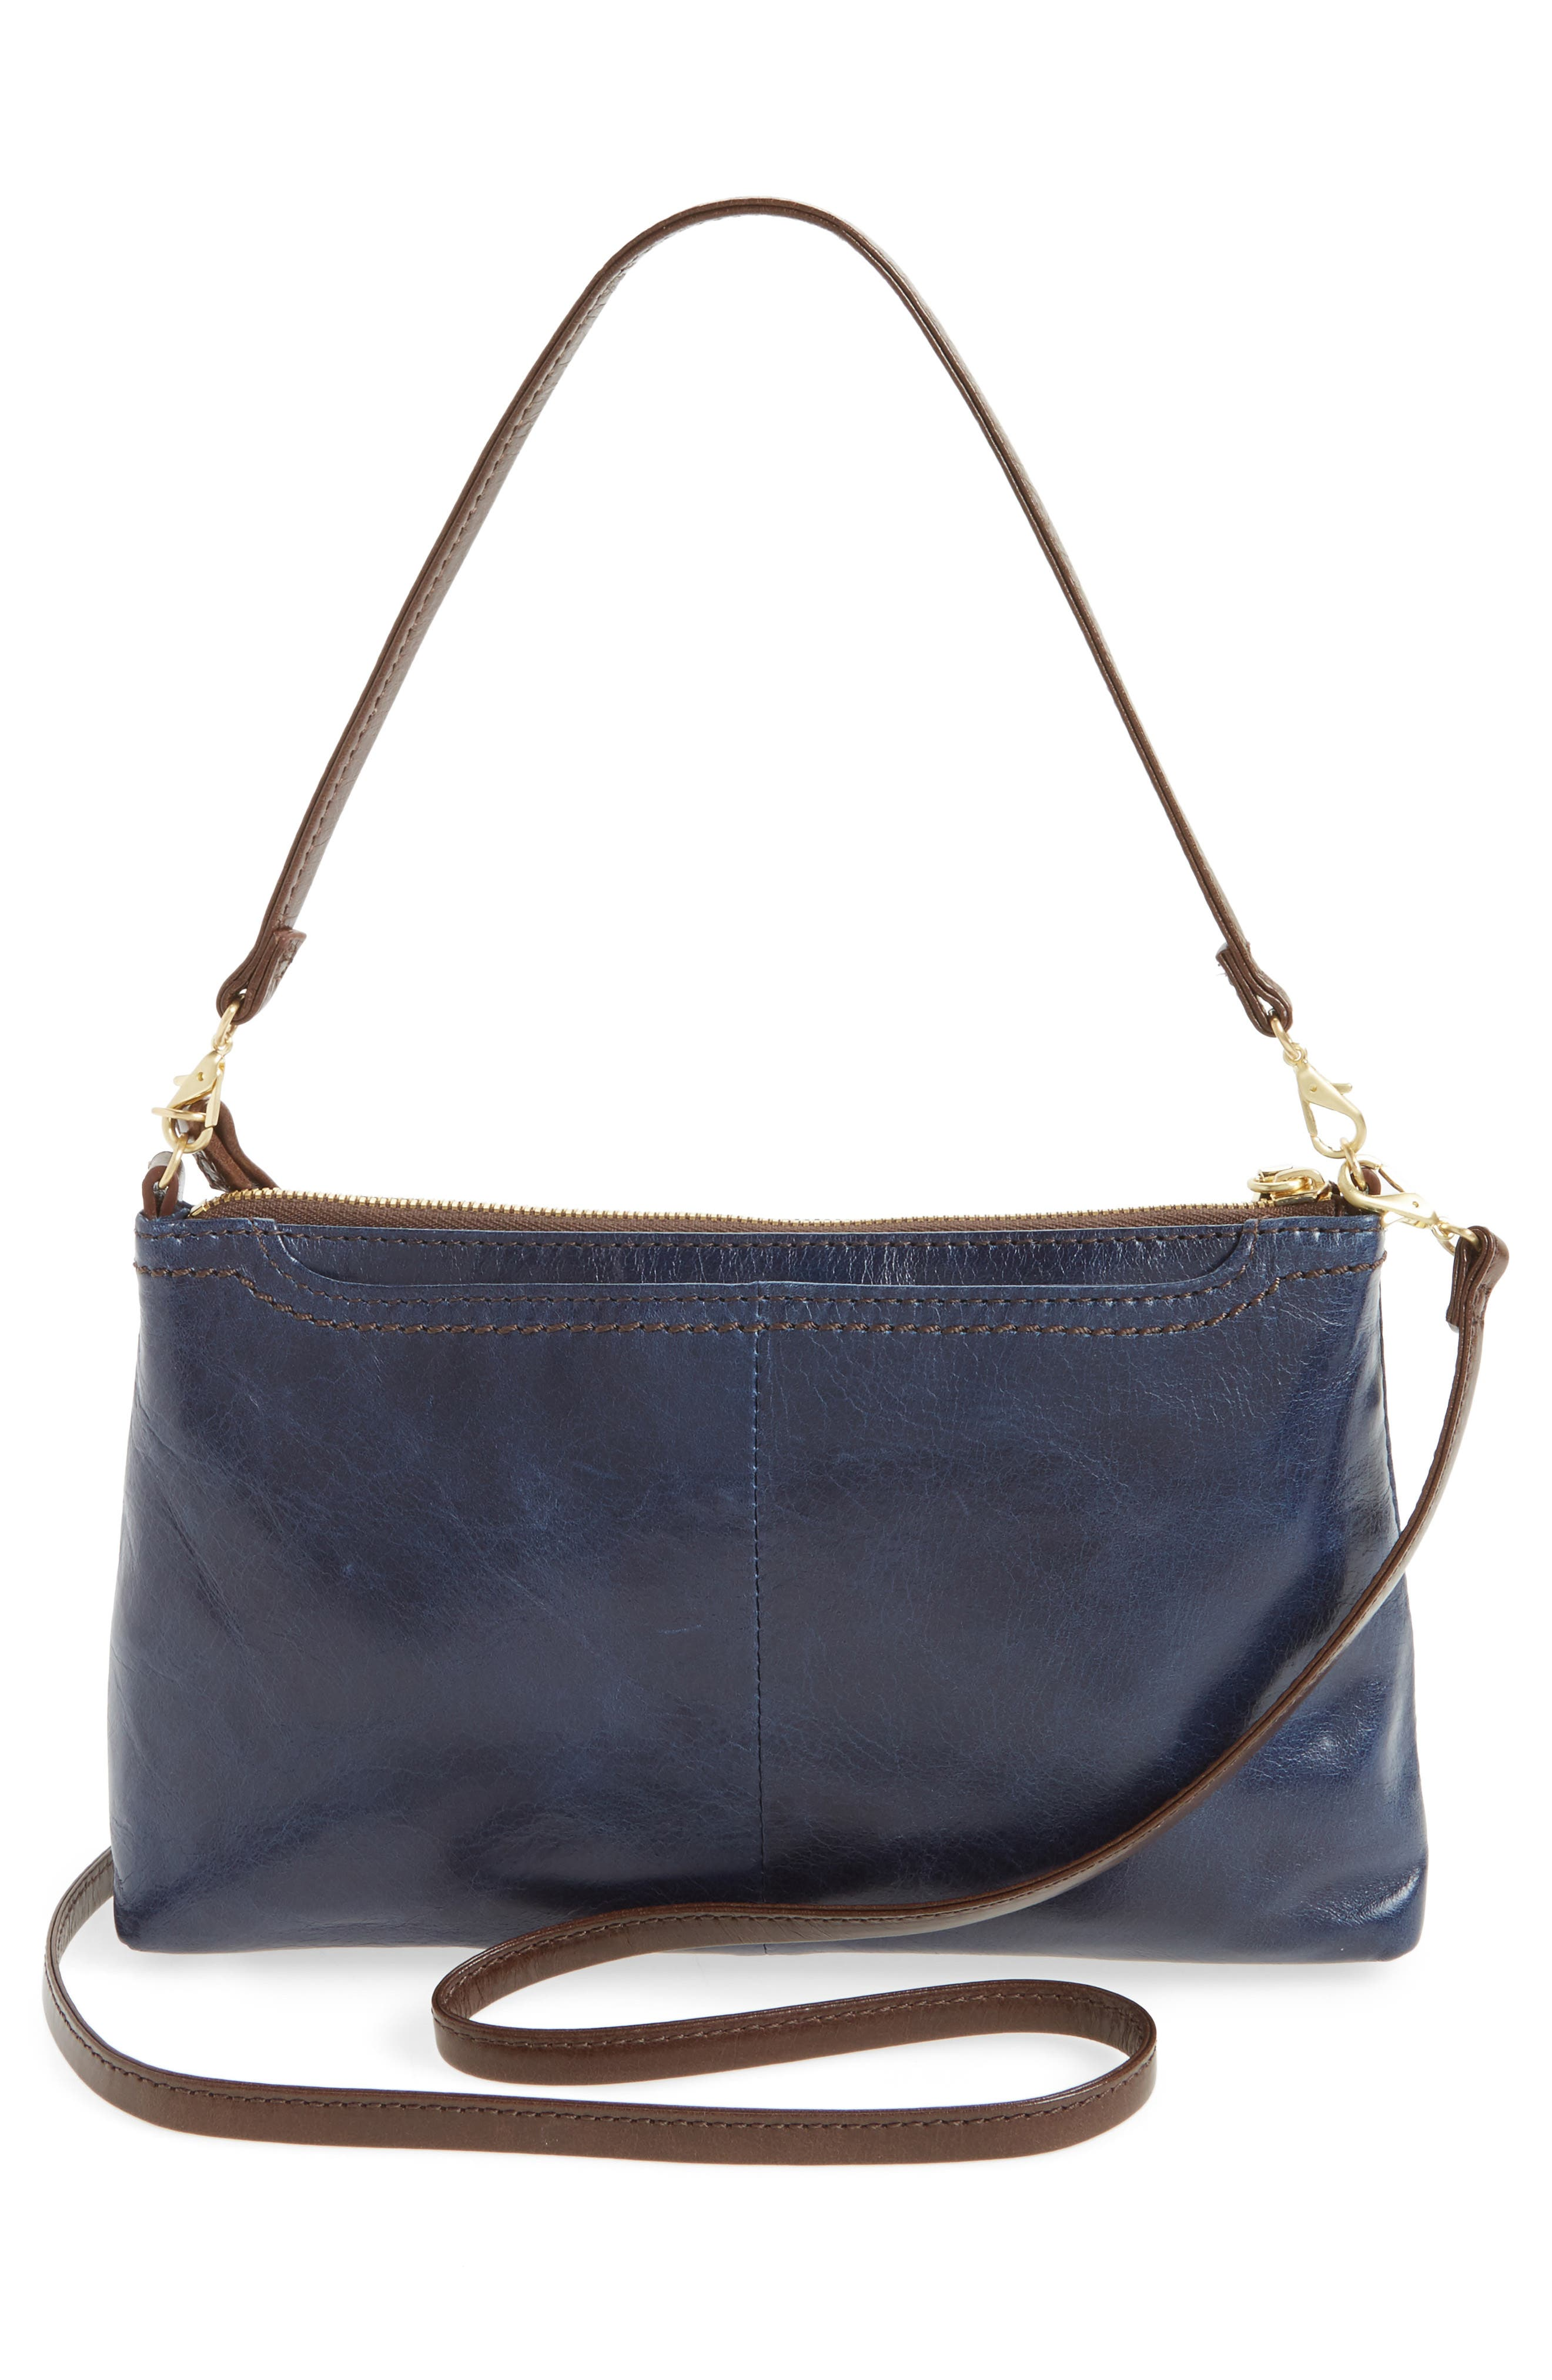 'Darcy' Leather Crossbody Bag,                             Alternate thumbnail 66, color,